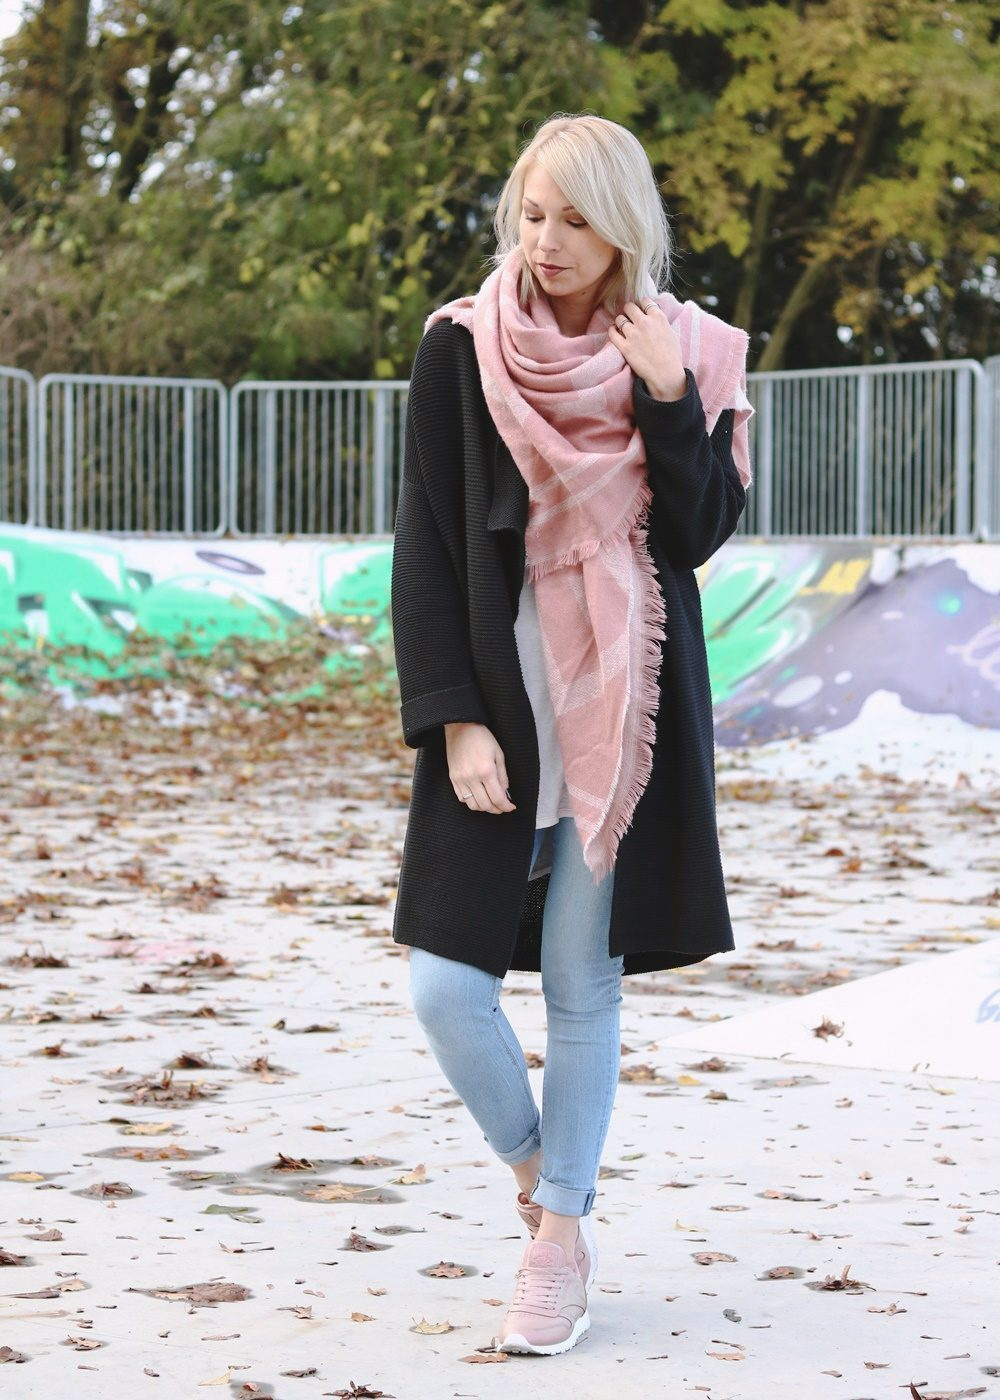 modeblogger-karlsruhe-outfit-herbst-skinnyjeans-rosa-schal-strickcardigan-reebok-classics-pearlized-metallic-3